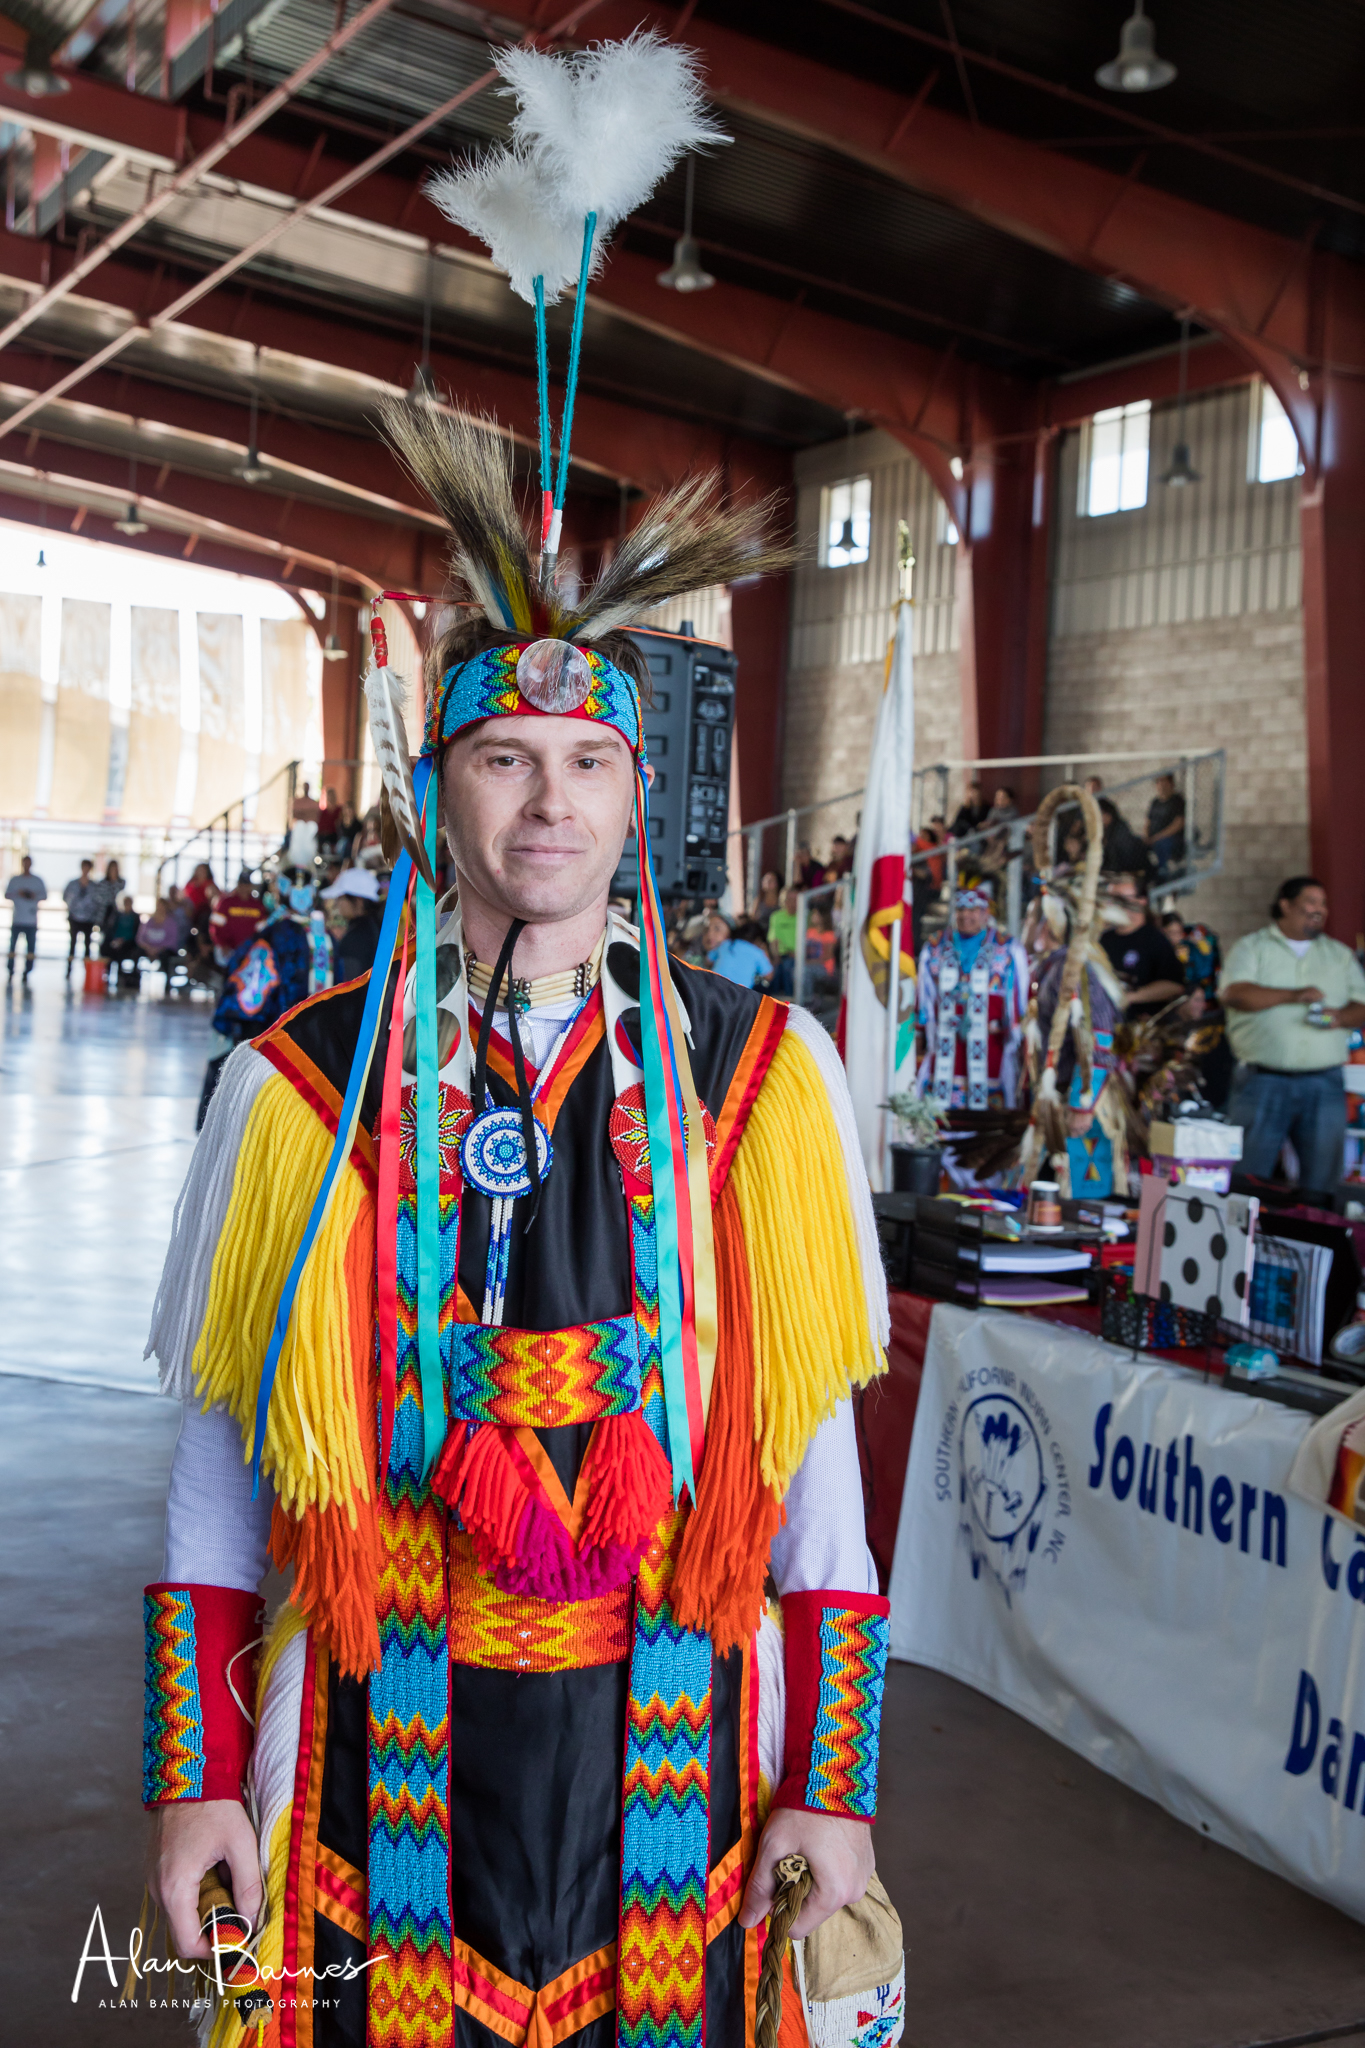 I was very surprised to find a Dave from Birmingham UK amongst the dancers! He told me there are groups in the UK who are dedicated to Native American culture and history. Dave is a brilliant dancer and is now a US resident.